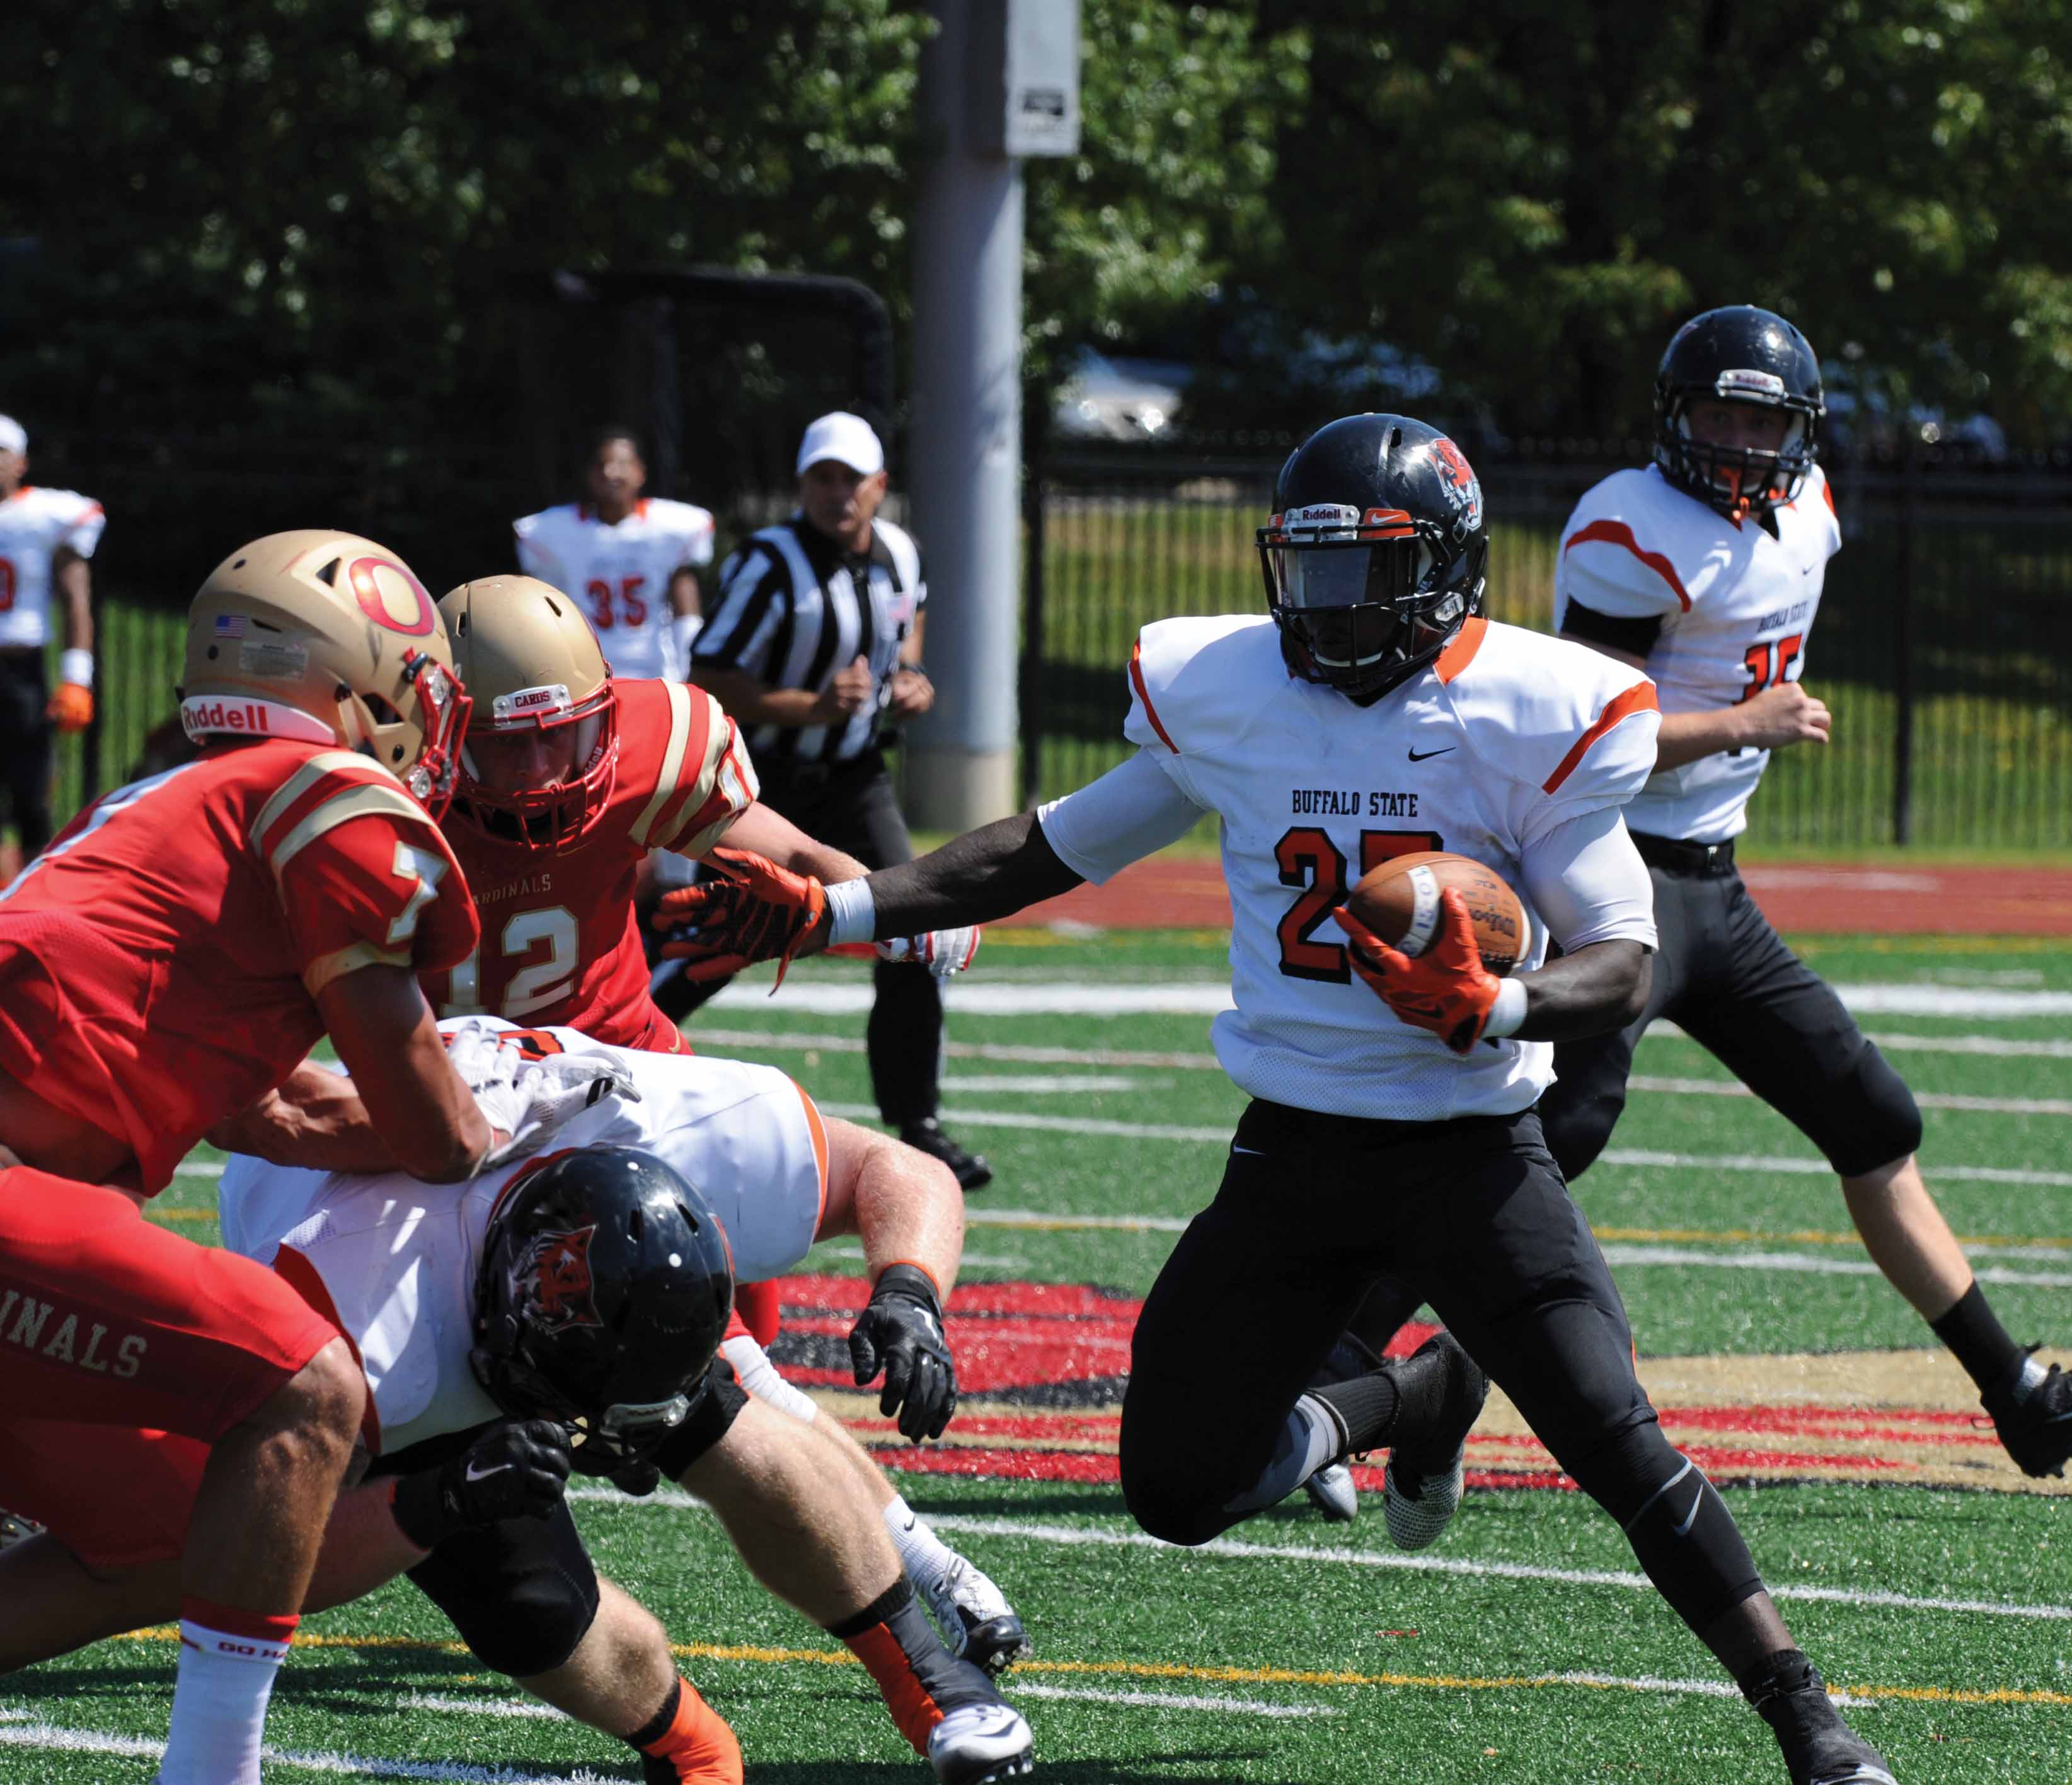 Sophomore running back Dale Stewart made his Buffalo State debut on Saturday, rushing eight times for 77 yards and a touchdown.